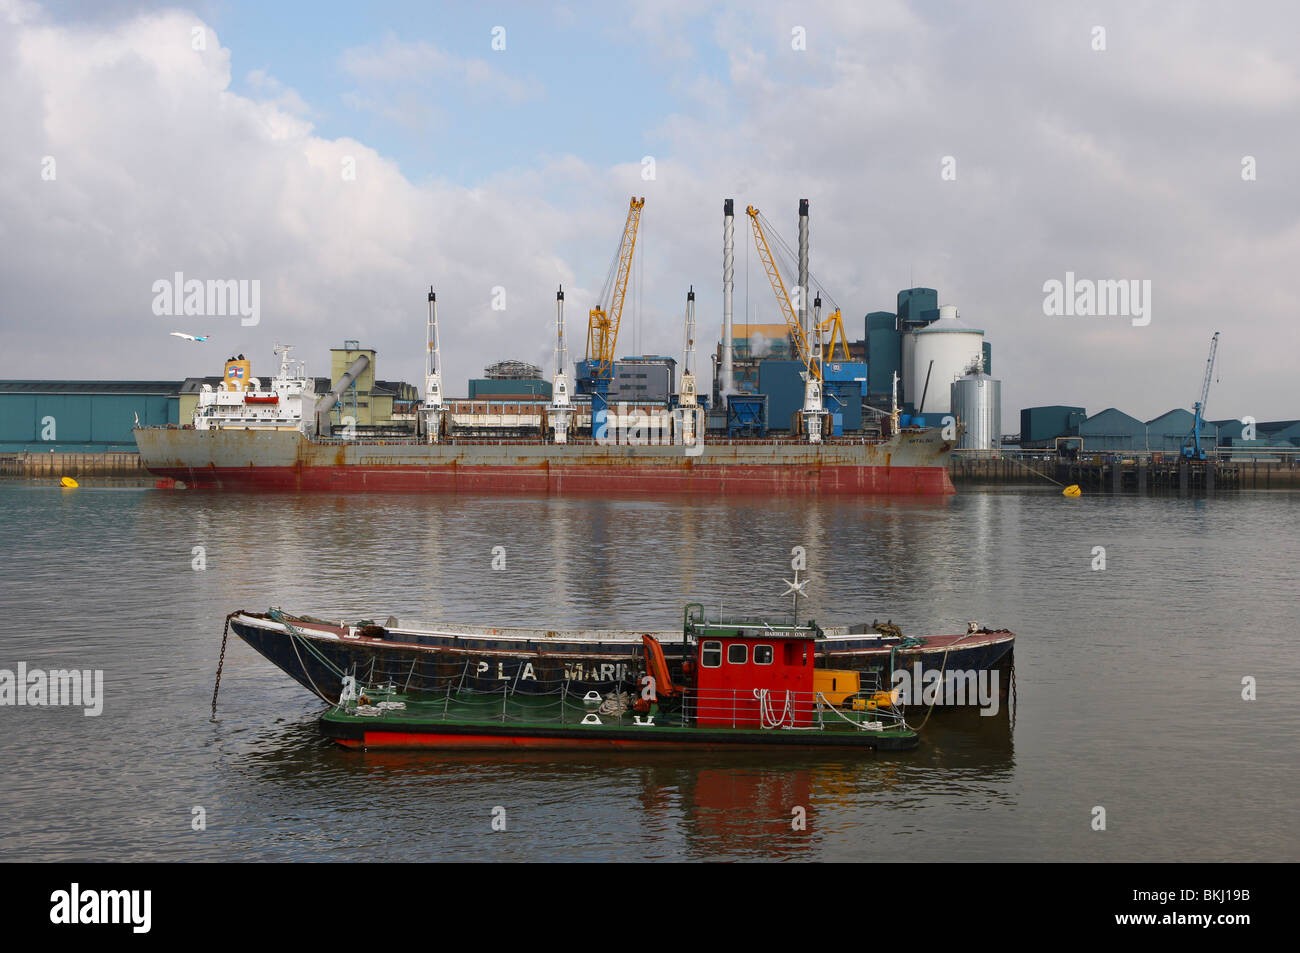 Tate and Lyle, Sugar Refinery, Silvertown, London, UK - Stock Image